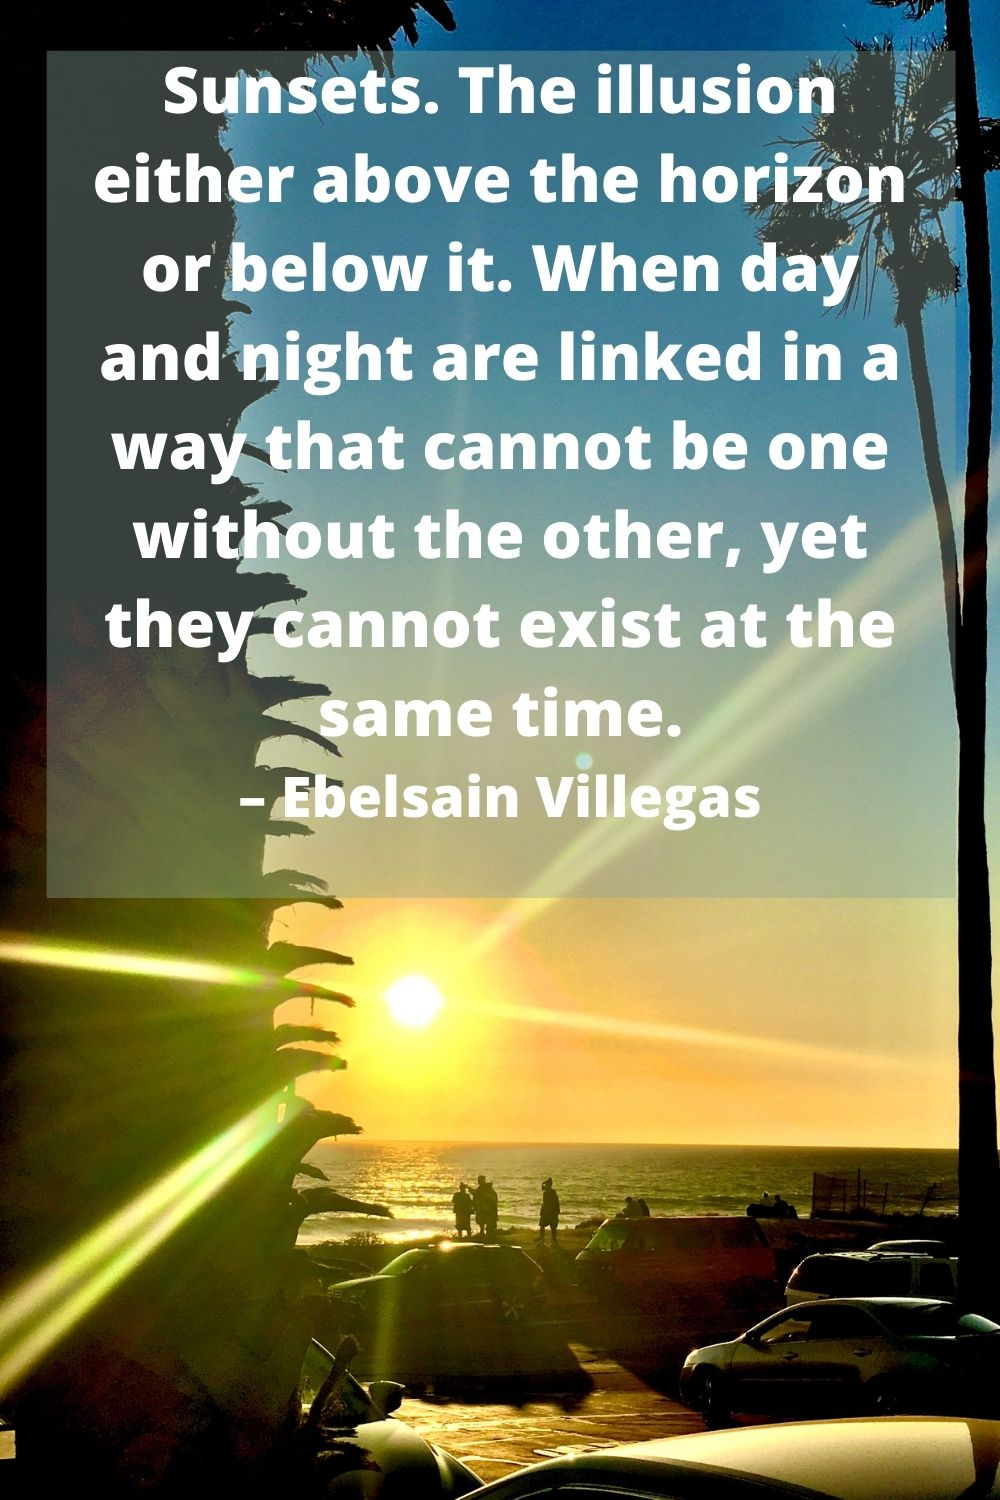 Sunsets. The illusion either above the horizon or below it. When day and night are linked in a way that cannot be one without the other, yet they cannot exist at the same time. – Ebelsain Villegas